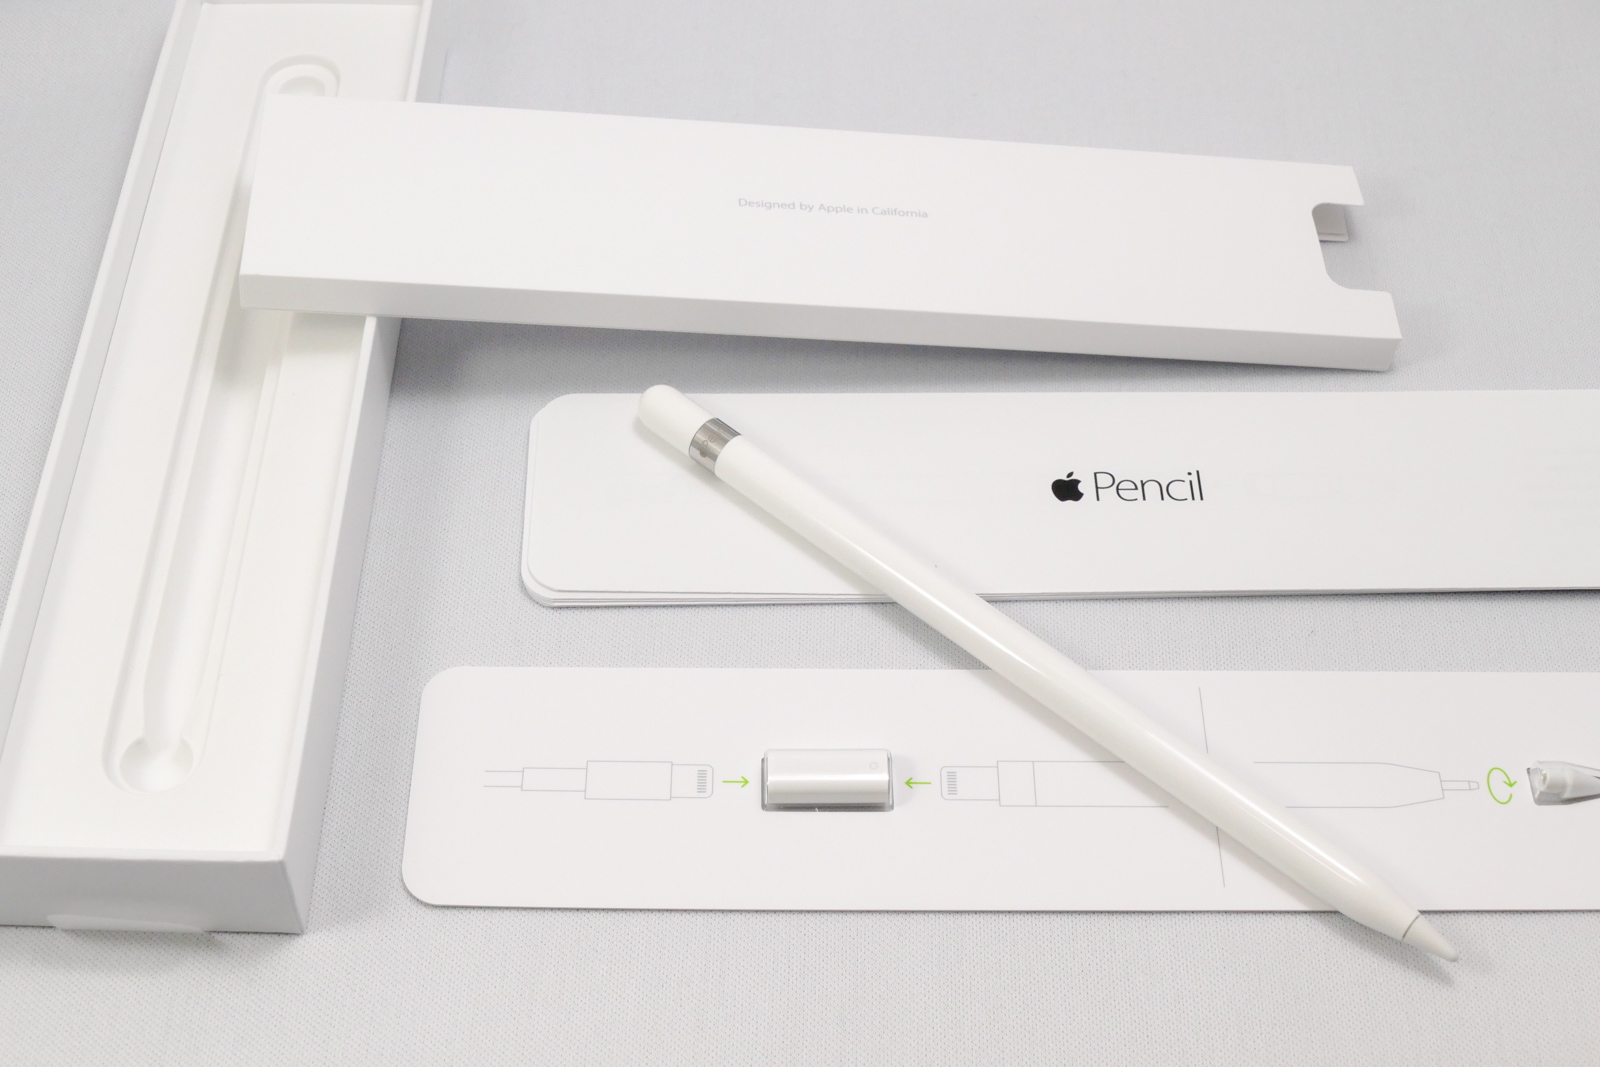 Apple Pencilと付属品